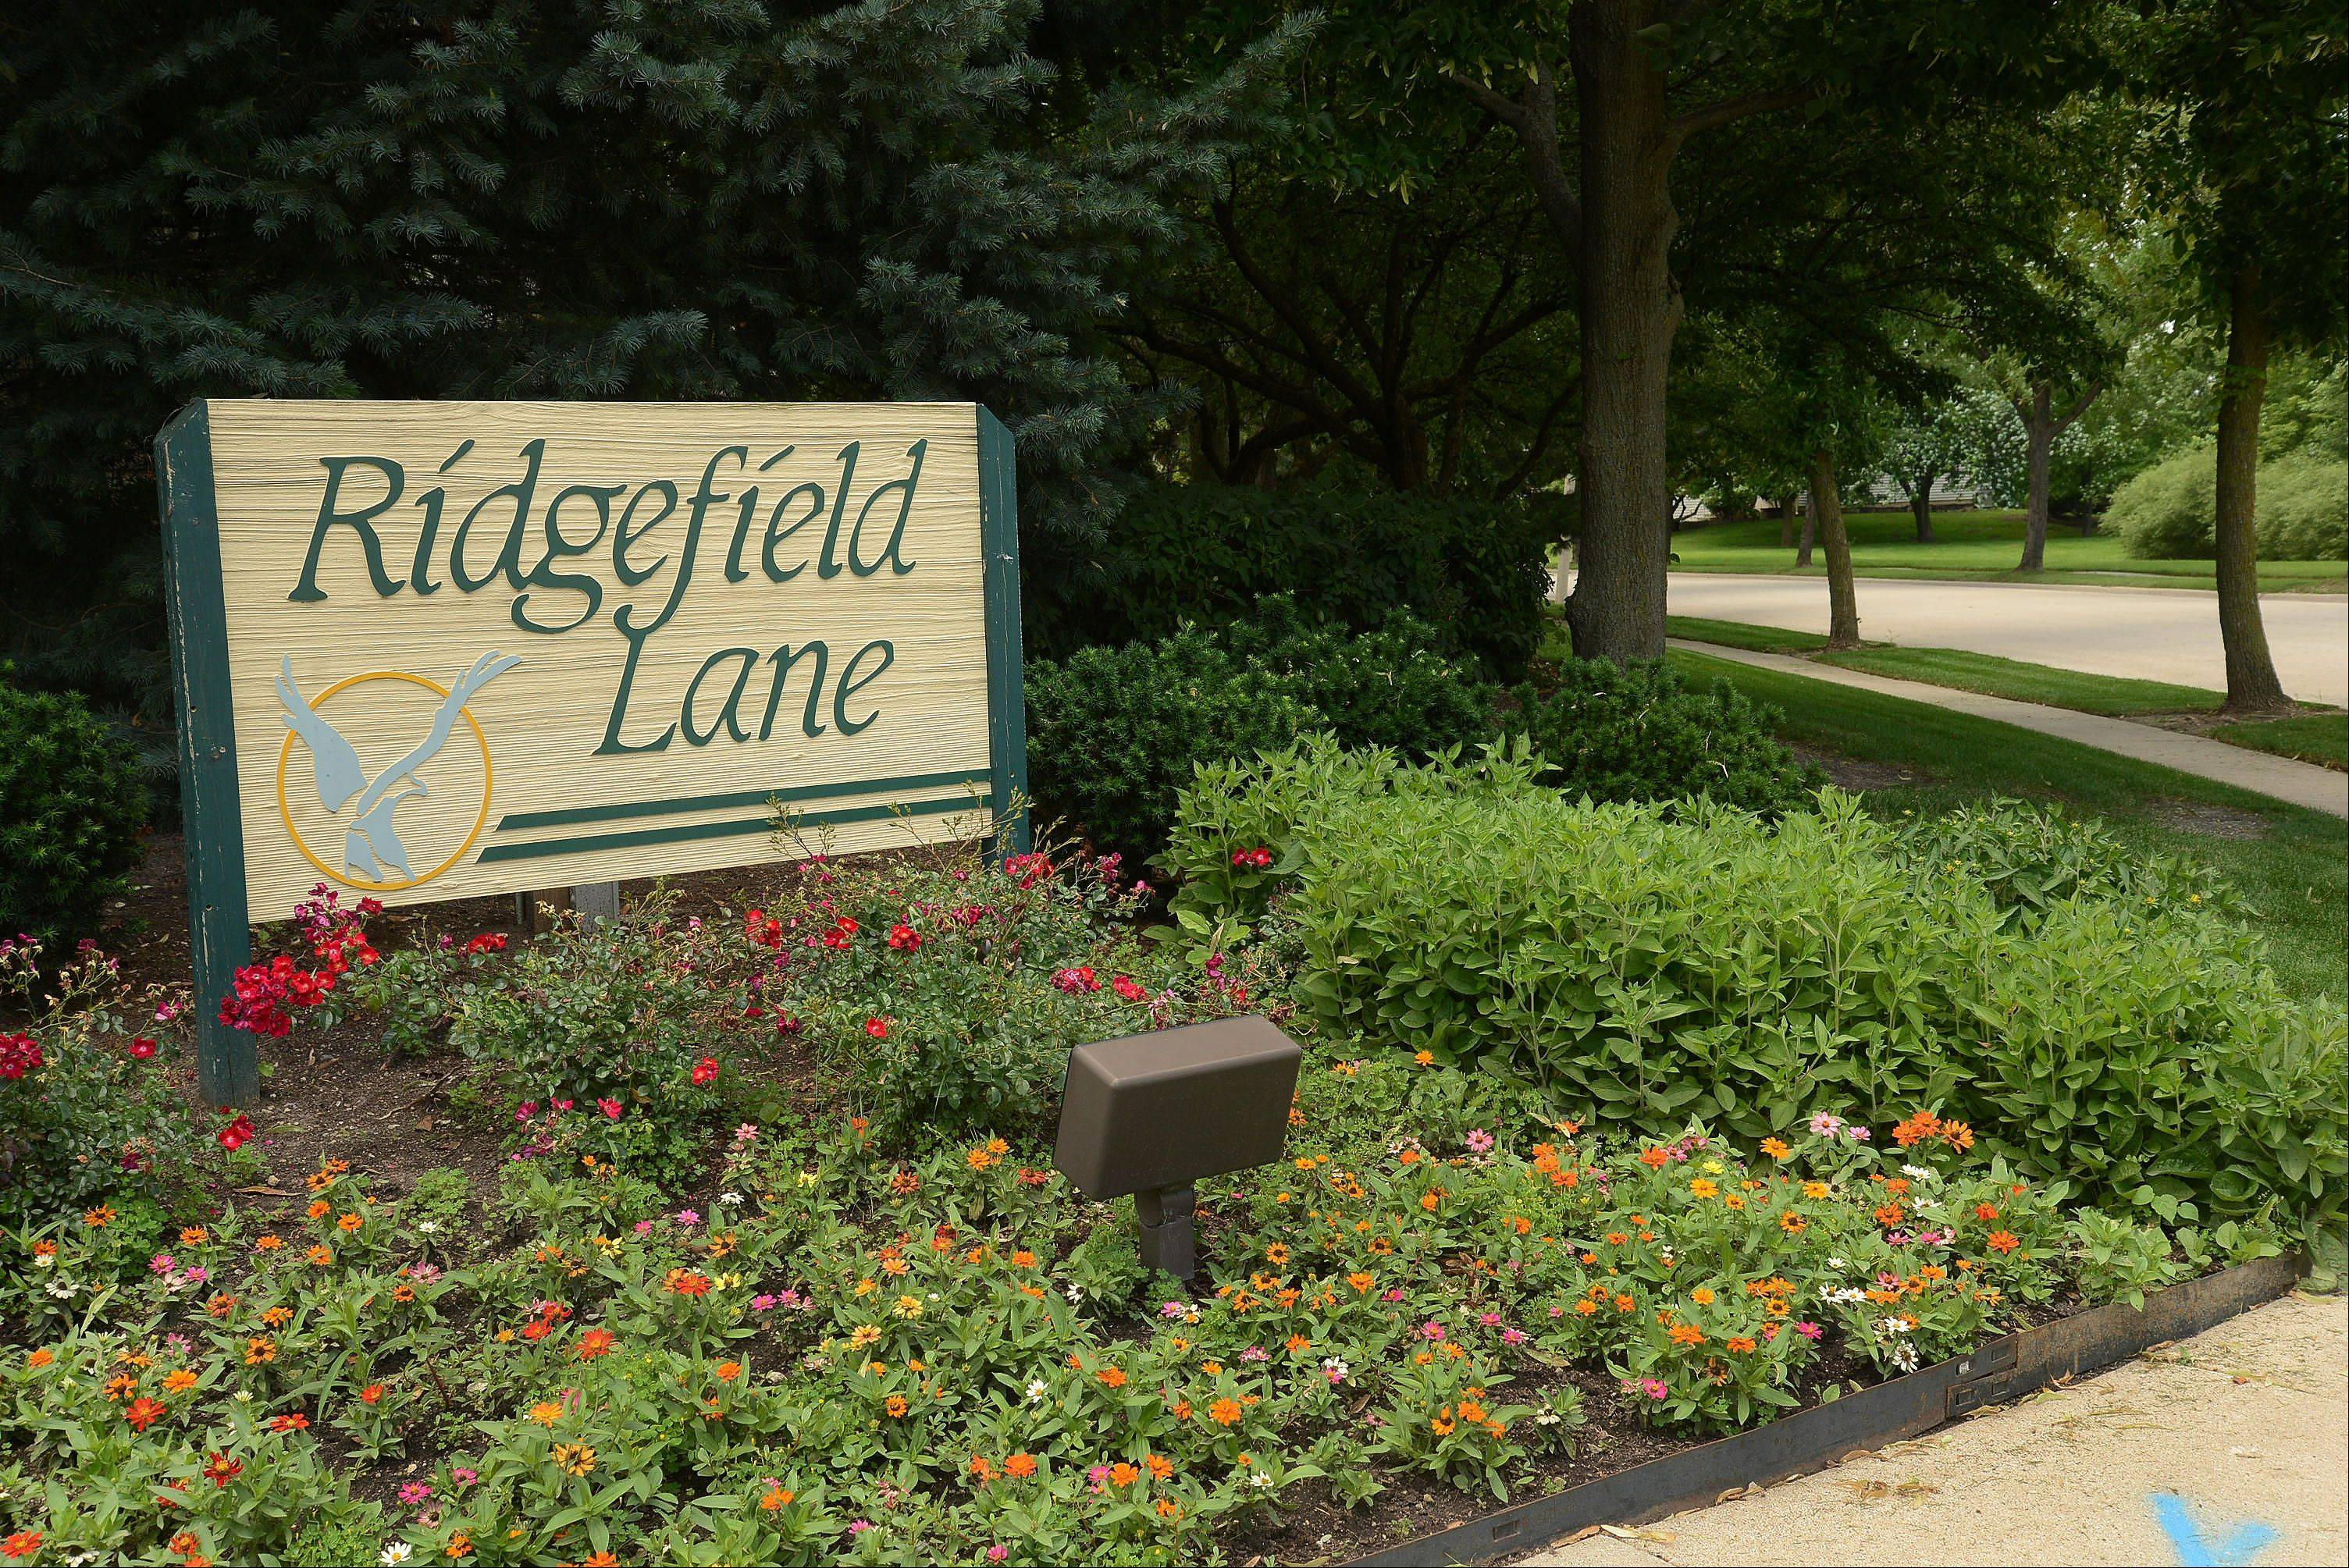 The Ridgefield subdivision features townhouses on Ridgefield Lane built by Kimball Hill Homes.